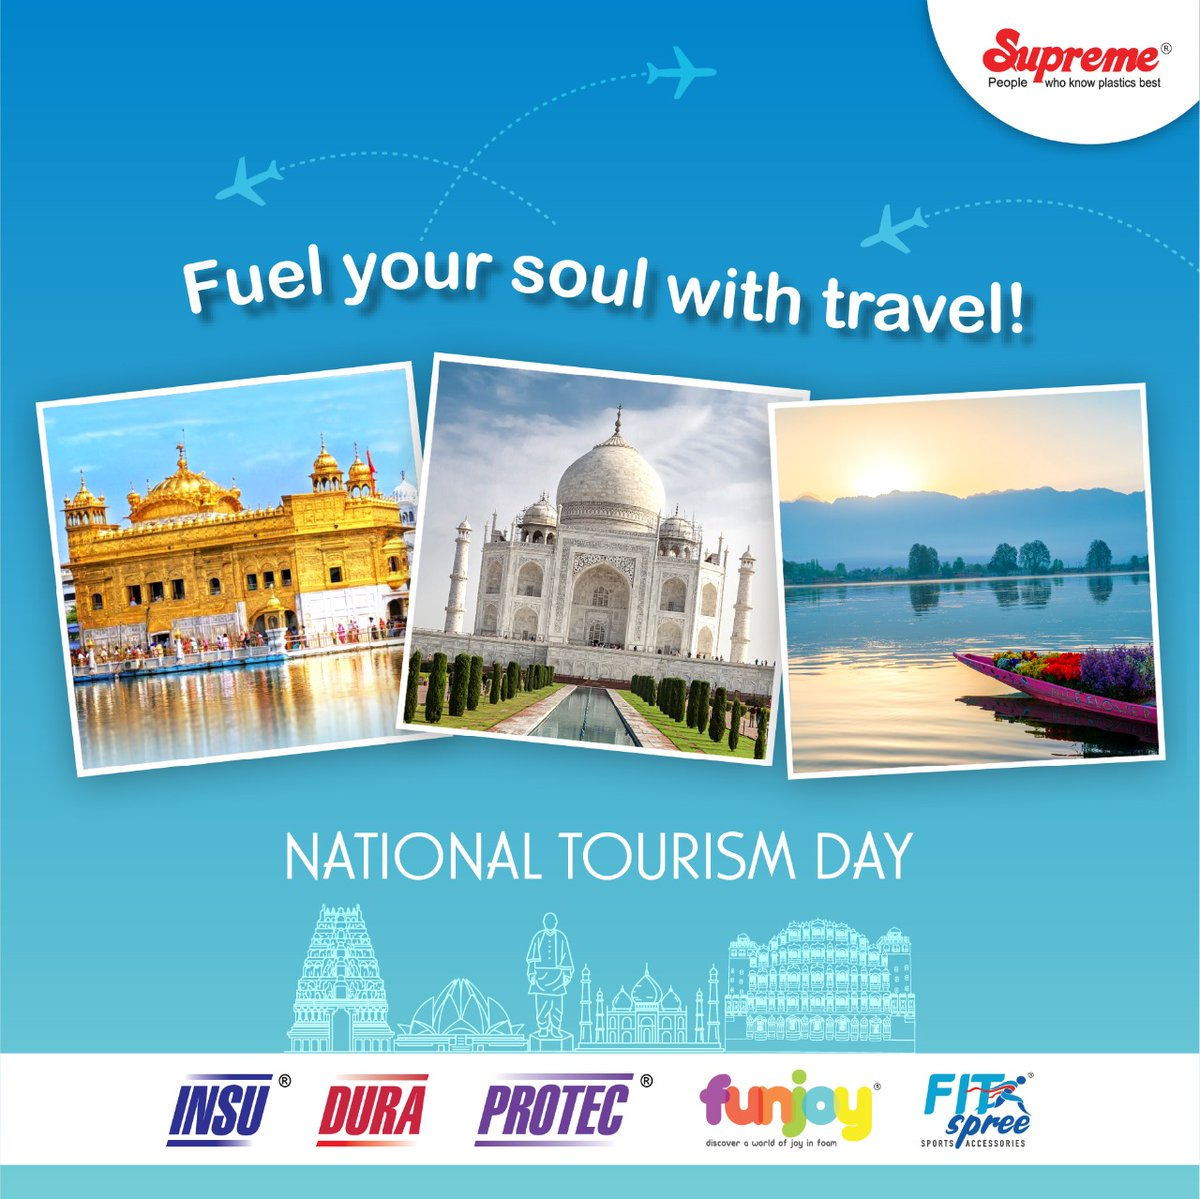 #NationalTourismDay is celebrated every year on 25th January, an incredible way to raise awareness about the importance of tourism & highlight India's diversity which makes it a prime attraction for tourists. #Supremeindustries #ProtectivePackagingSolutions #PROTEC #DURA #INSU